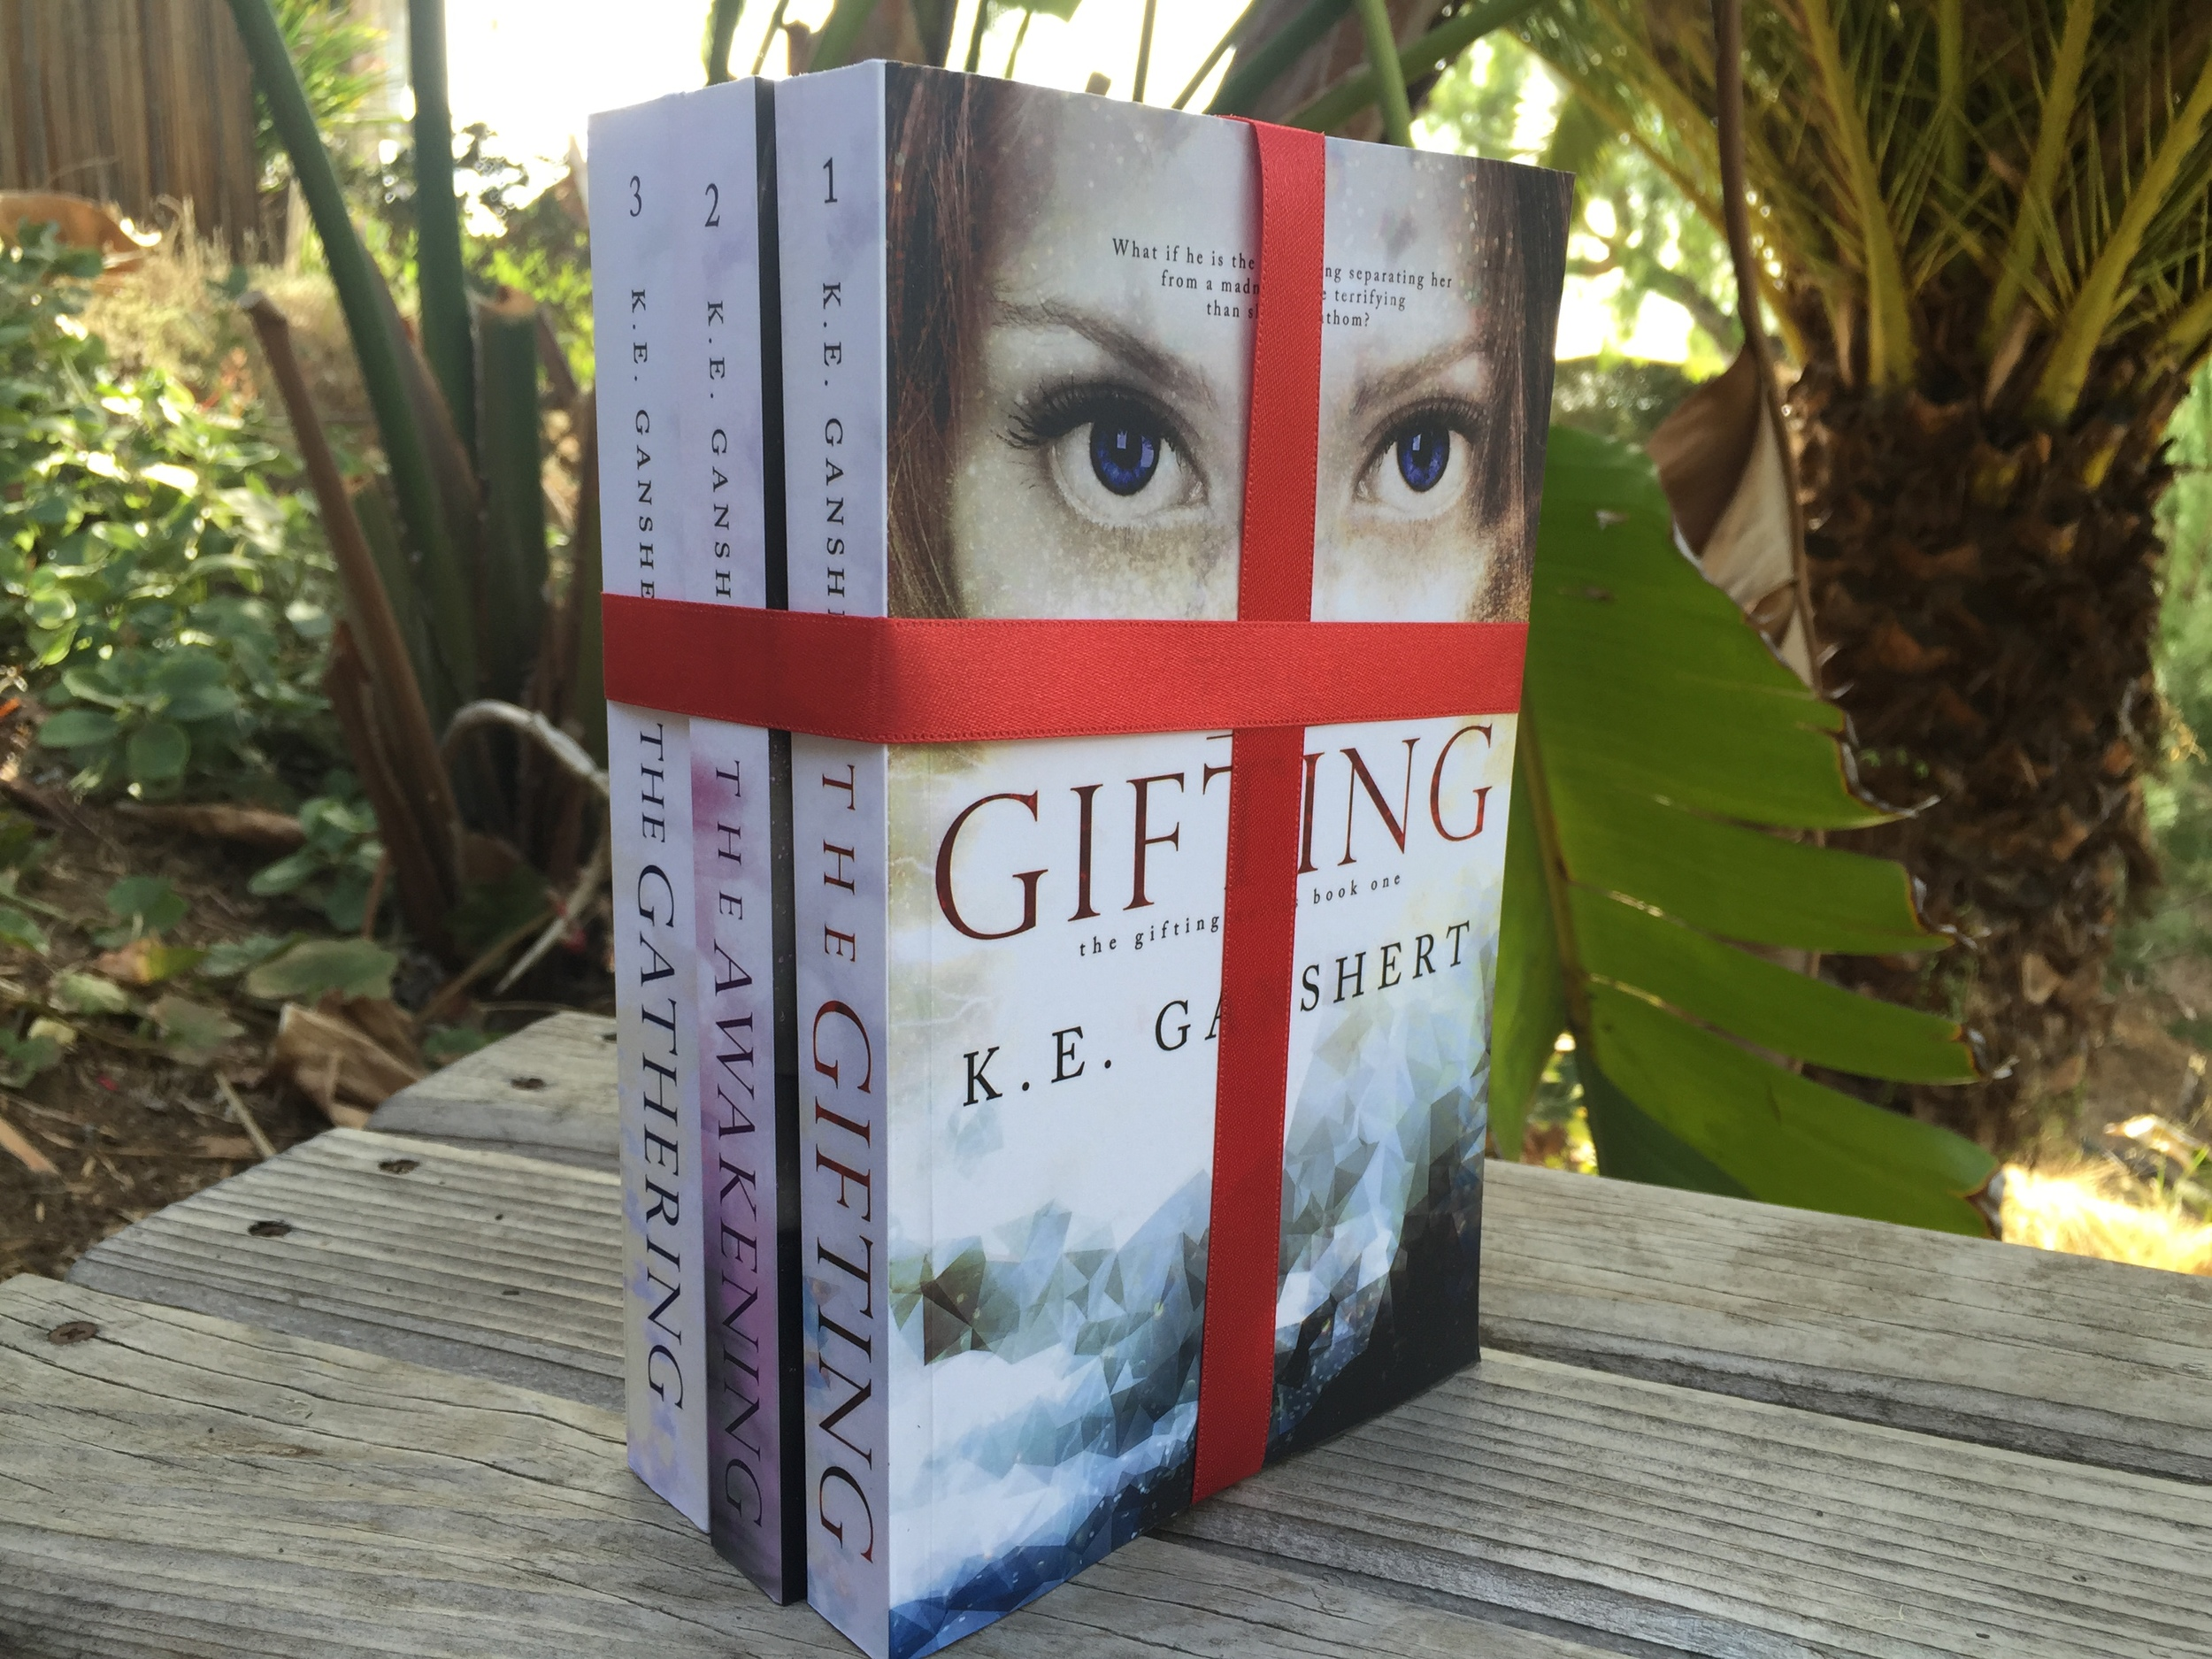 You can pretend like you'll gift this trilogy to your niece or bff's teenage daughter, but don't be fooled!  K.E. Ganshert  will keep you up all night reading by the light of your phone flashlight in this page turning, heart pounding, dystopian trilogy. YA Lit at its finest, you're going to love the characters and Ganshert's gift for weaving a tale! Its also signed by the author herself! Special shout out to K.E. Ganshert for this donation!